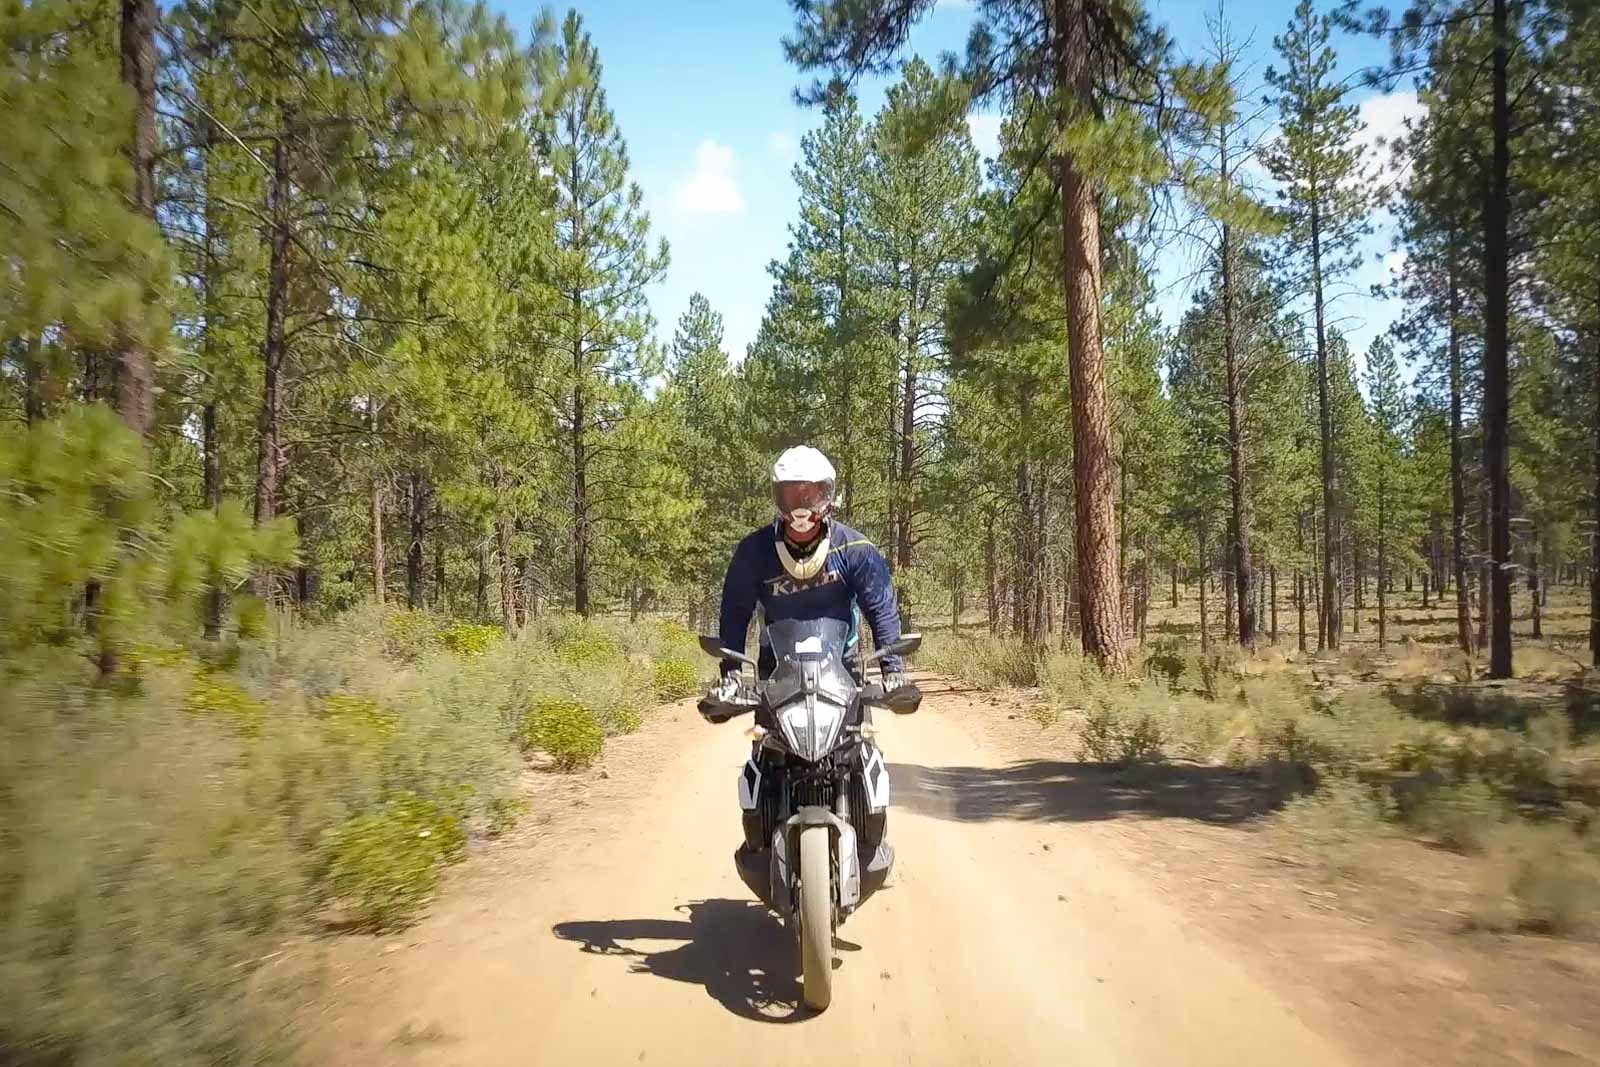 Eric on the KTM 790 Adventure heading toward the camera with a beautiful forest and trail behind him